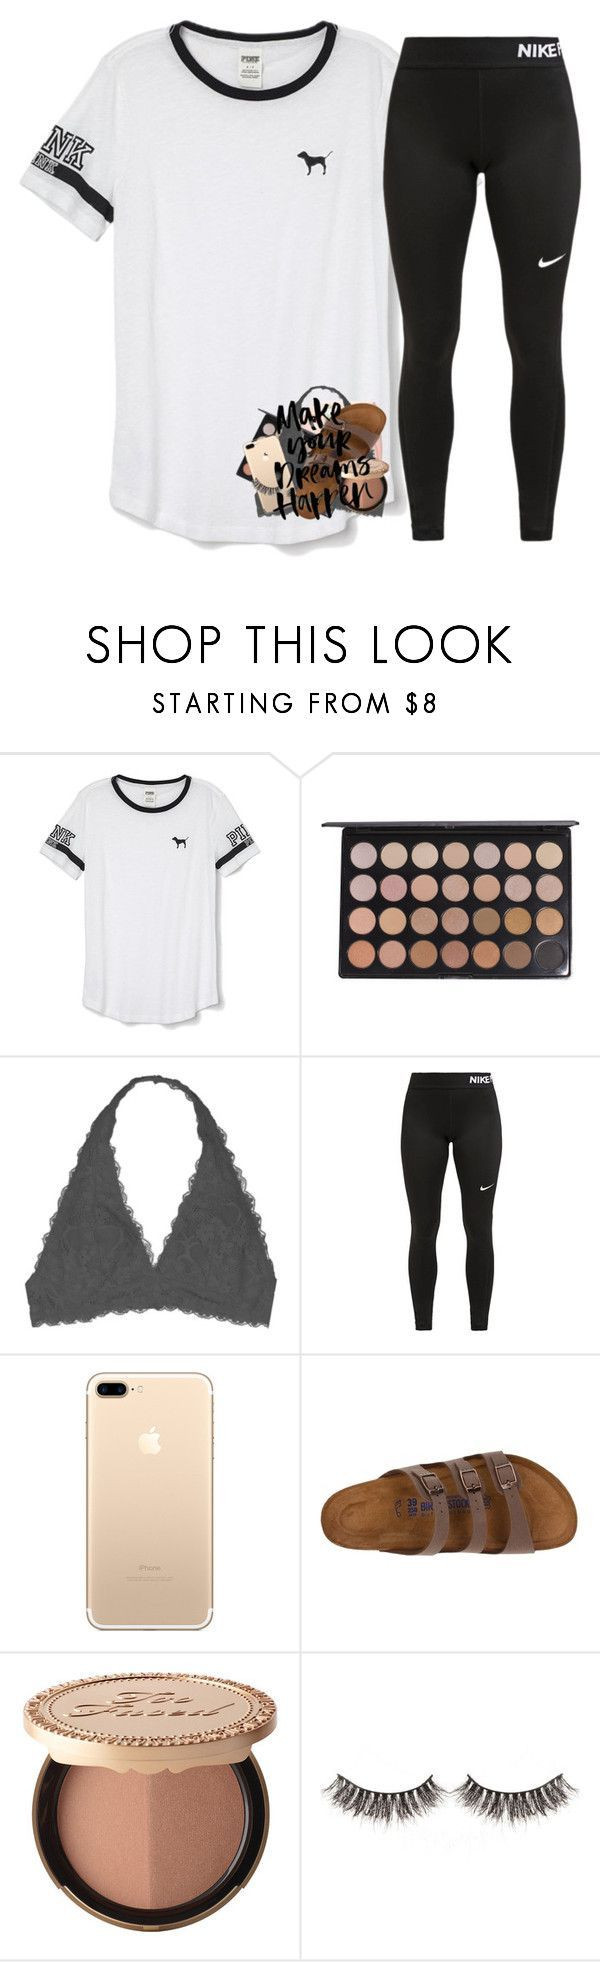 """""""School pics tomorrow """" by abigailcdunn ❤ liked on Polyvore featuring Victoria's Secret PINK, Fujifilm, Youmita, NIKE, Birkenstock and Too Faced Cosmetics"""